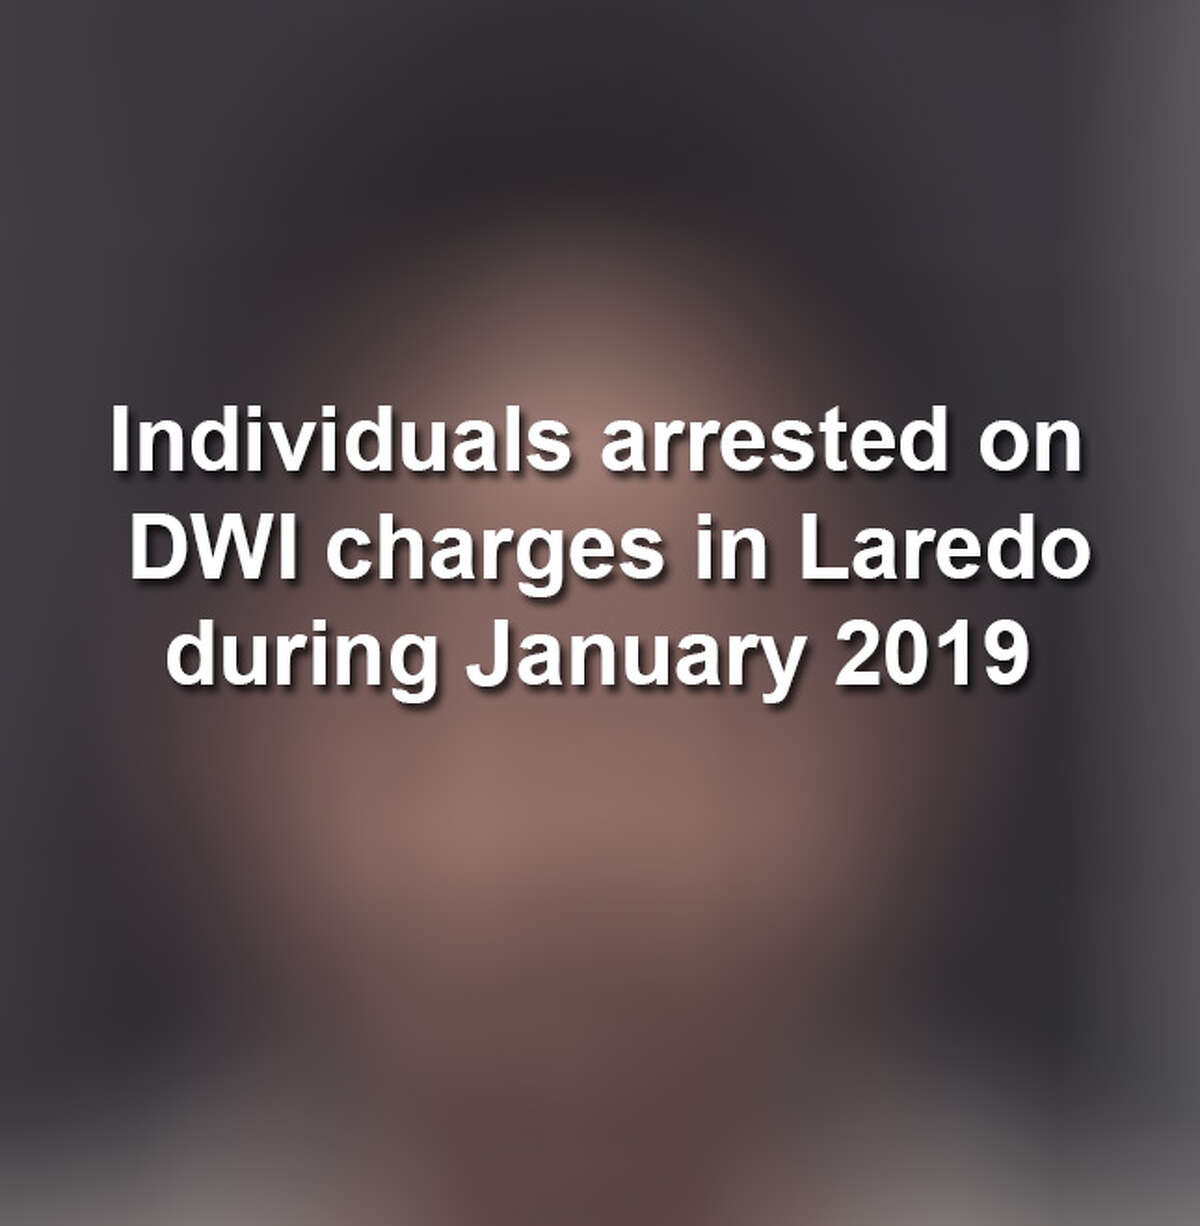 Keep scrolling to see the mugshots of individuals charged with misdemeanor and felony DWI charges last month in Laredo, according to police records.